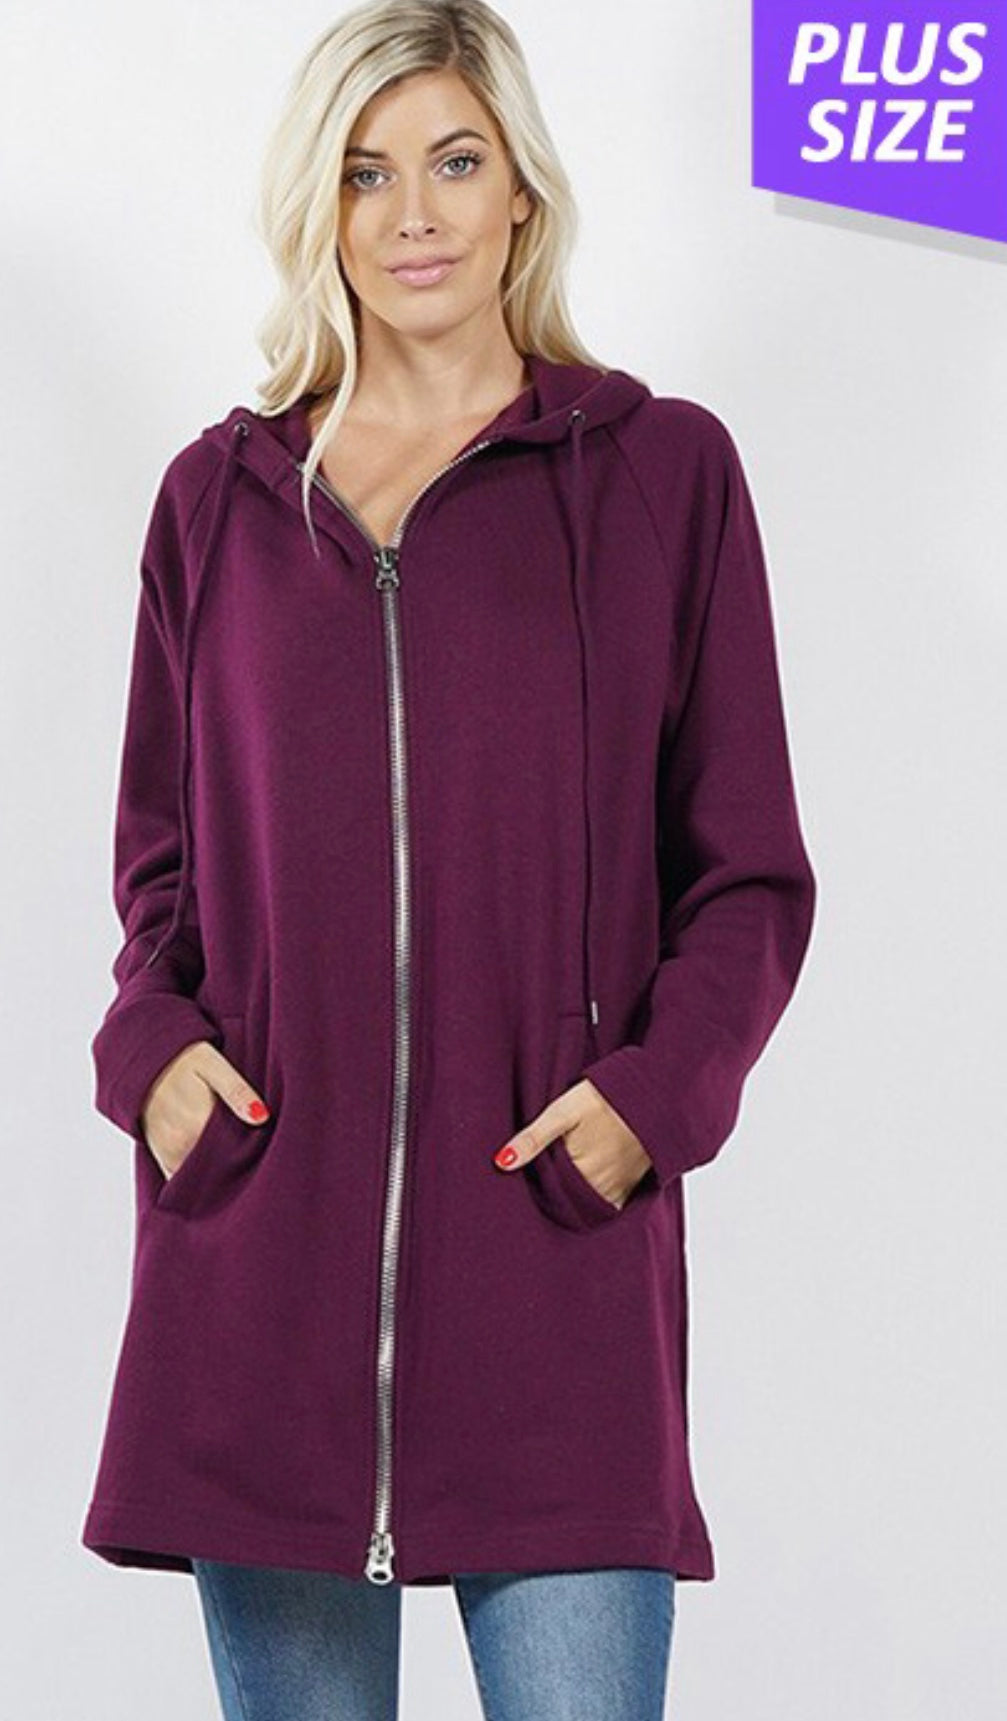 Long Sleeve Zip Hoodie with Free Shipping